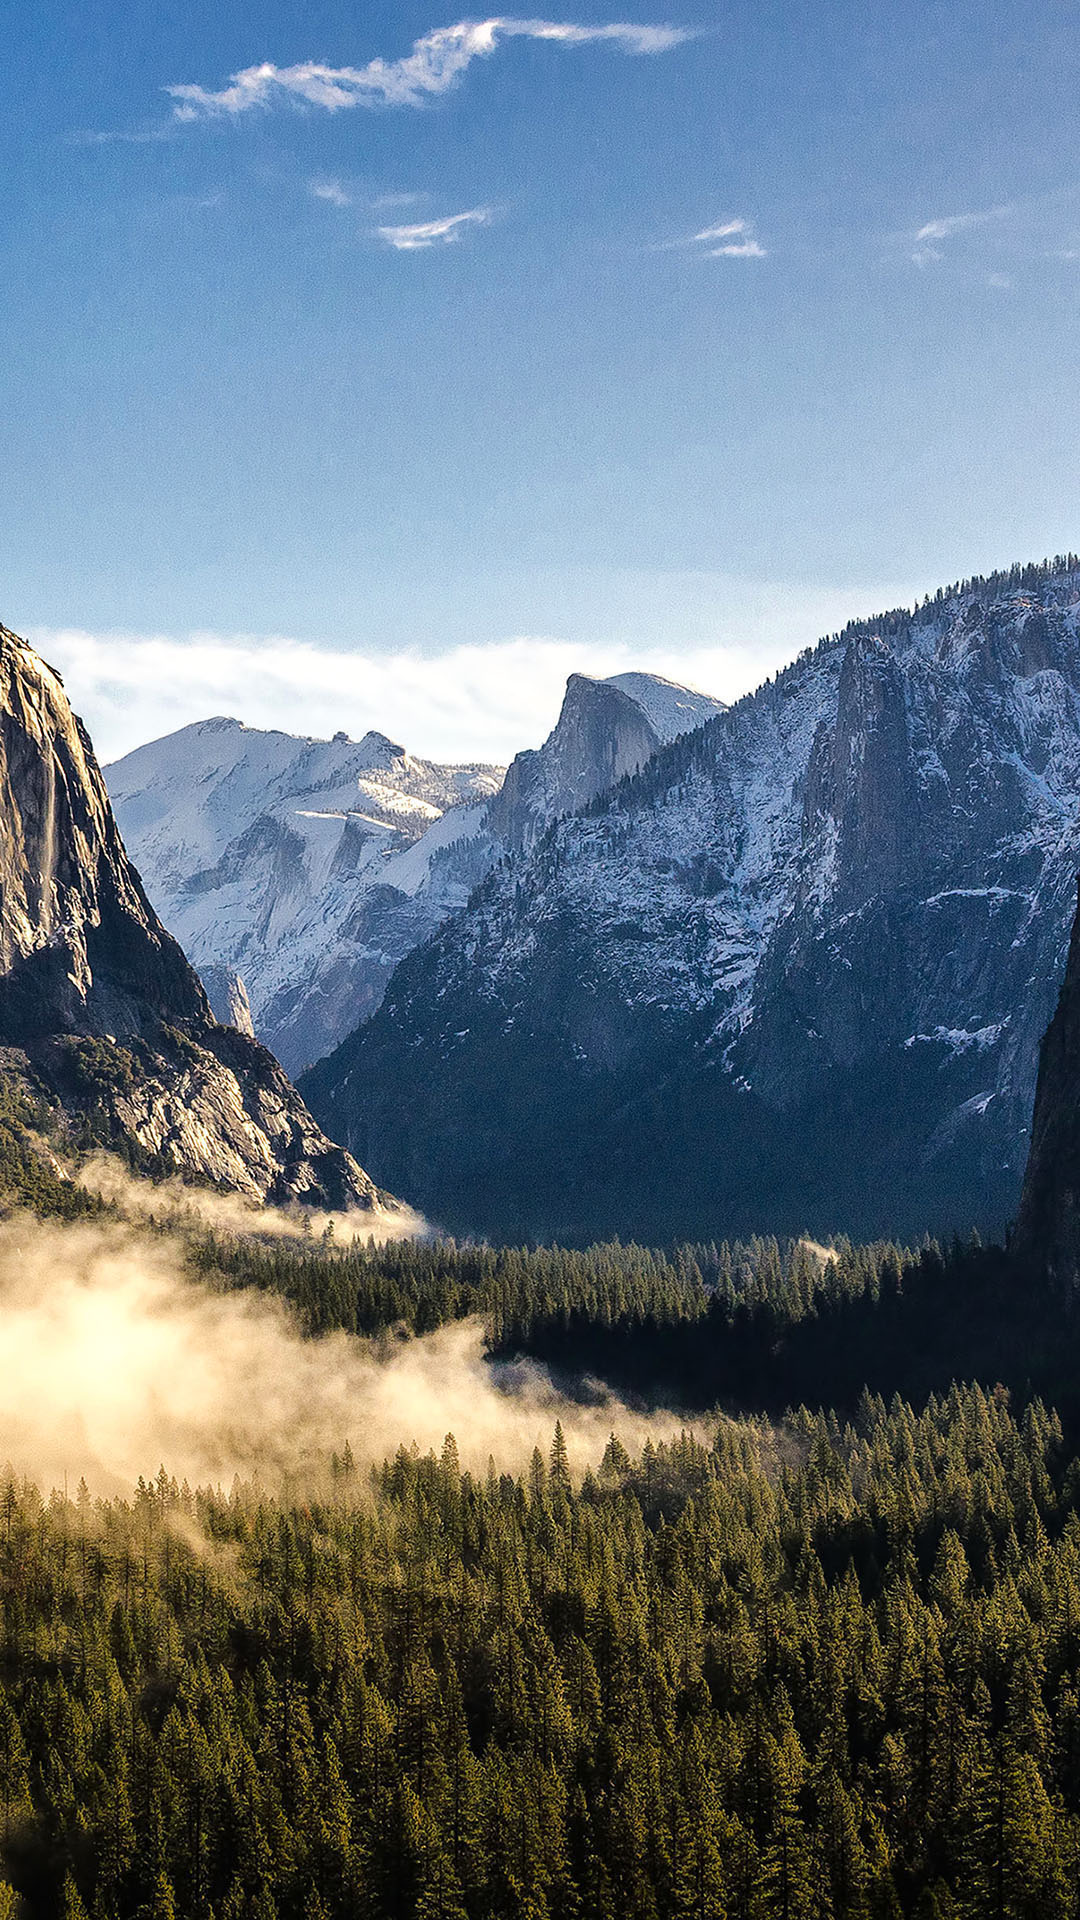 yosemite-national-park-mountain-mist-forest-android-wallpaper